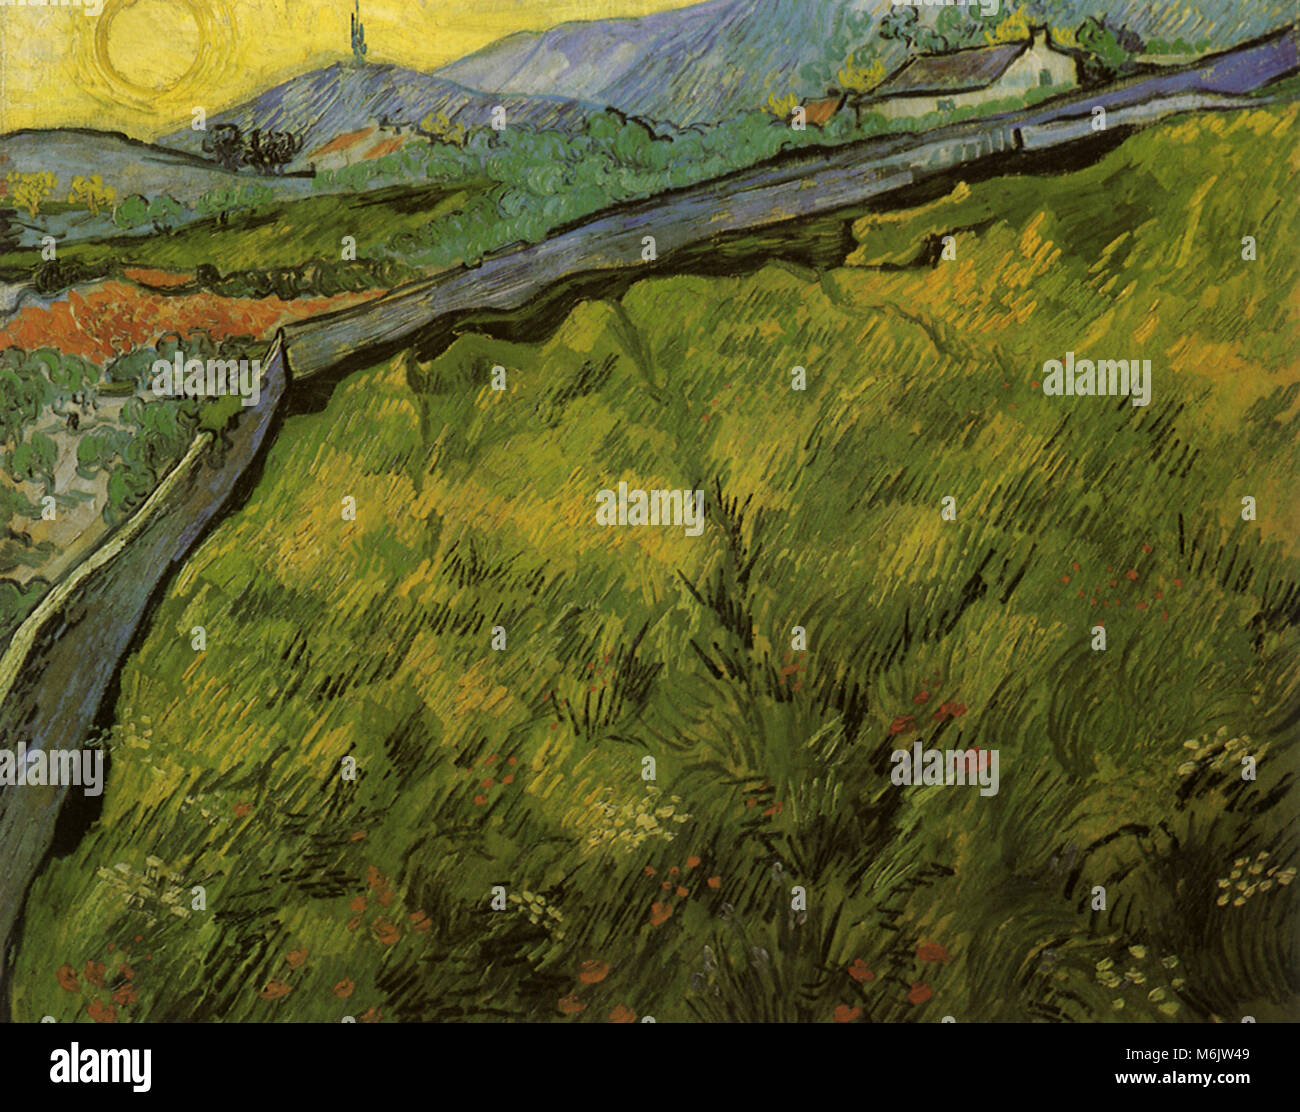 Field of Spring Wheat at Sunrise, Van Gogh, Vincent Willem, 1889. - Stock Image